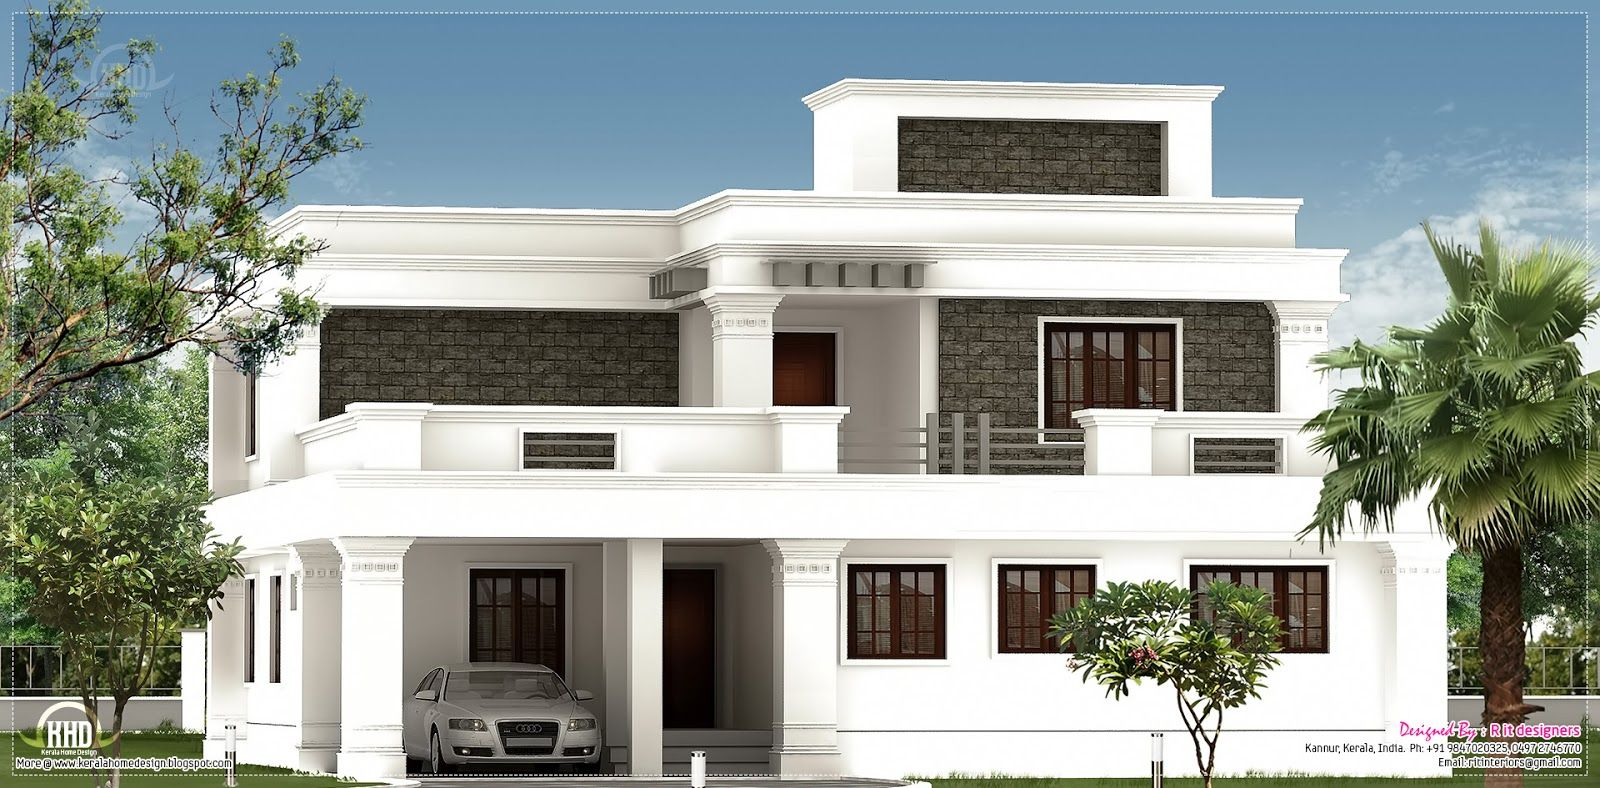 Flat roof homes designs flat roof villa exterior in 2400 Plans for villas